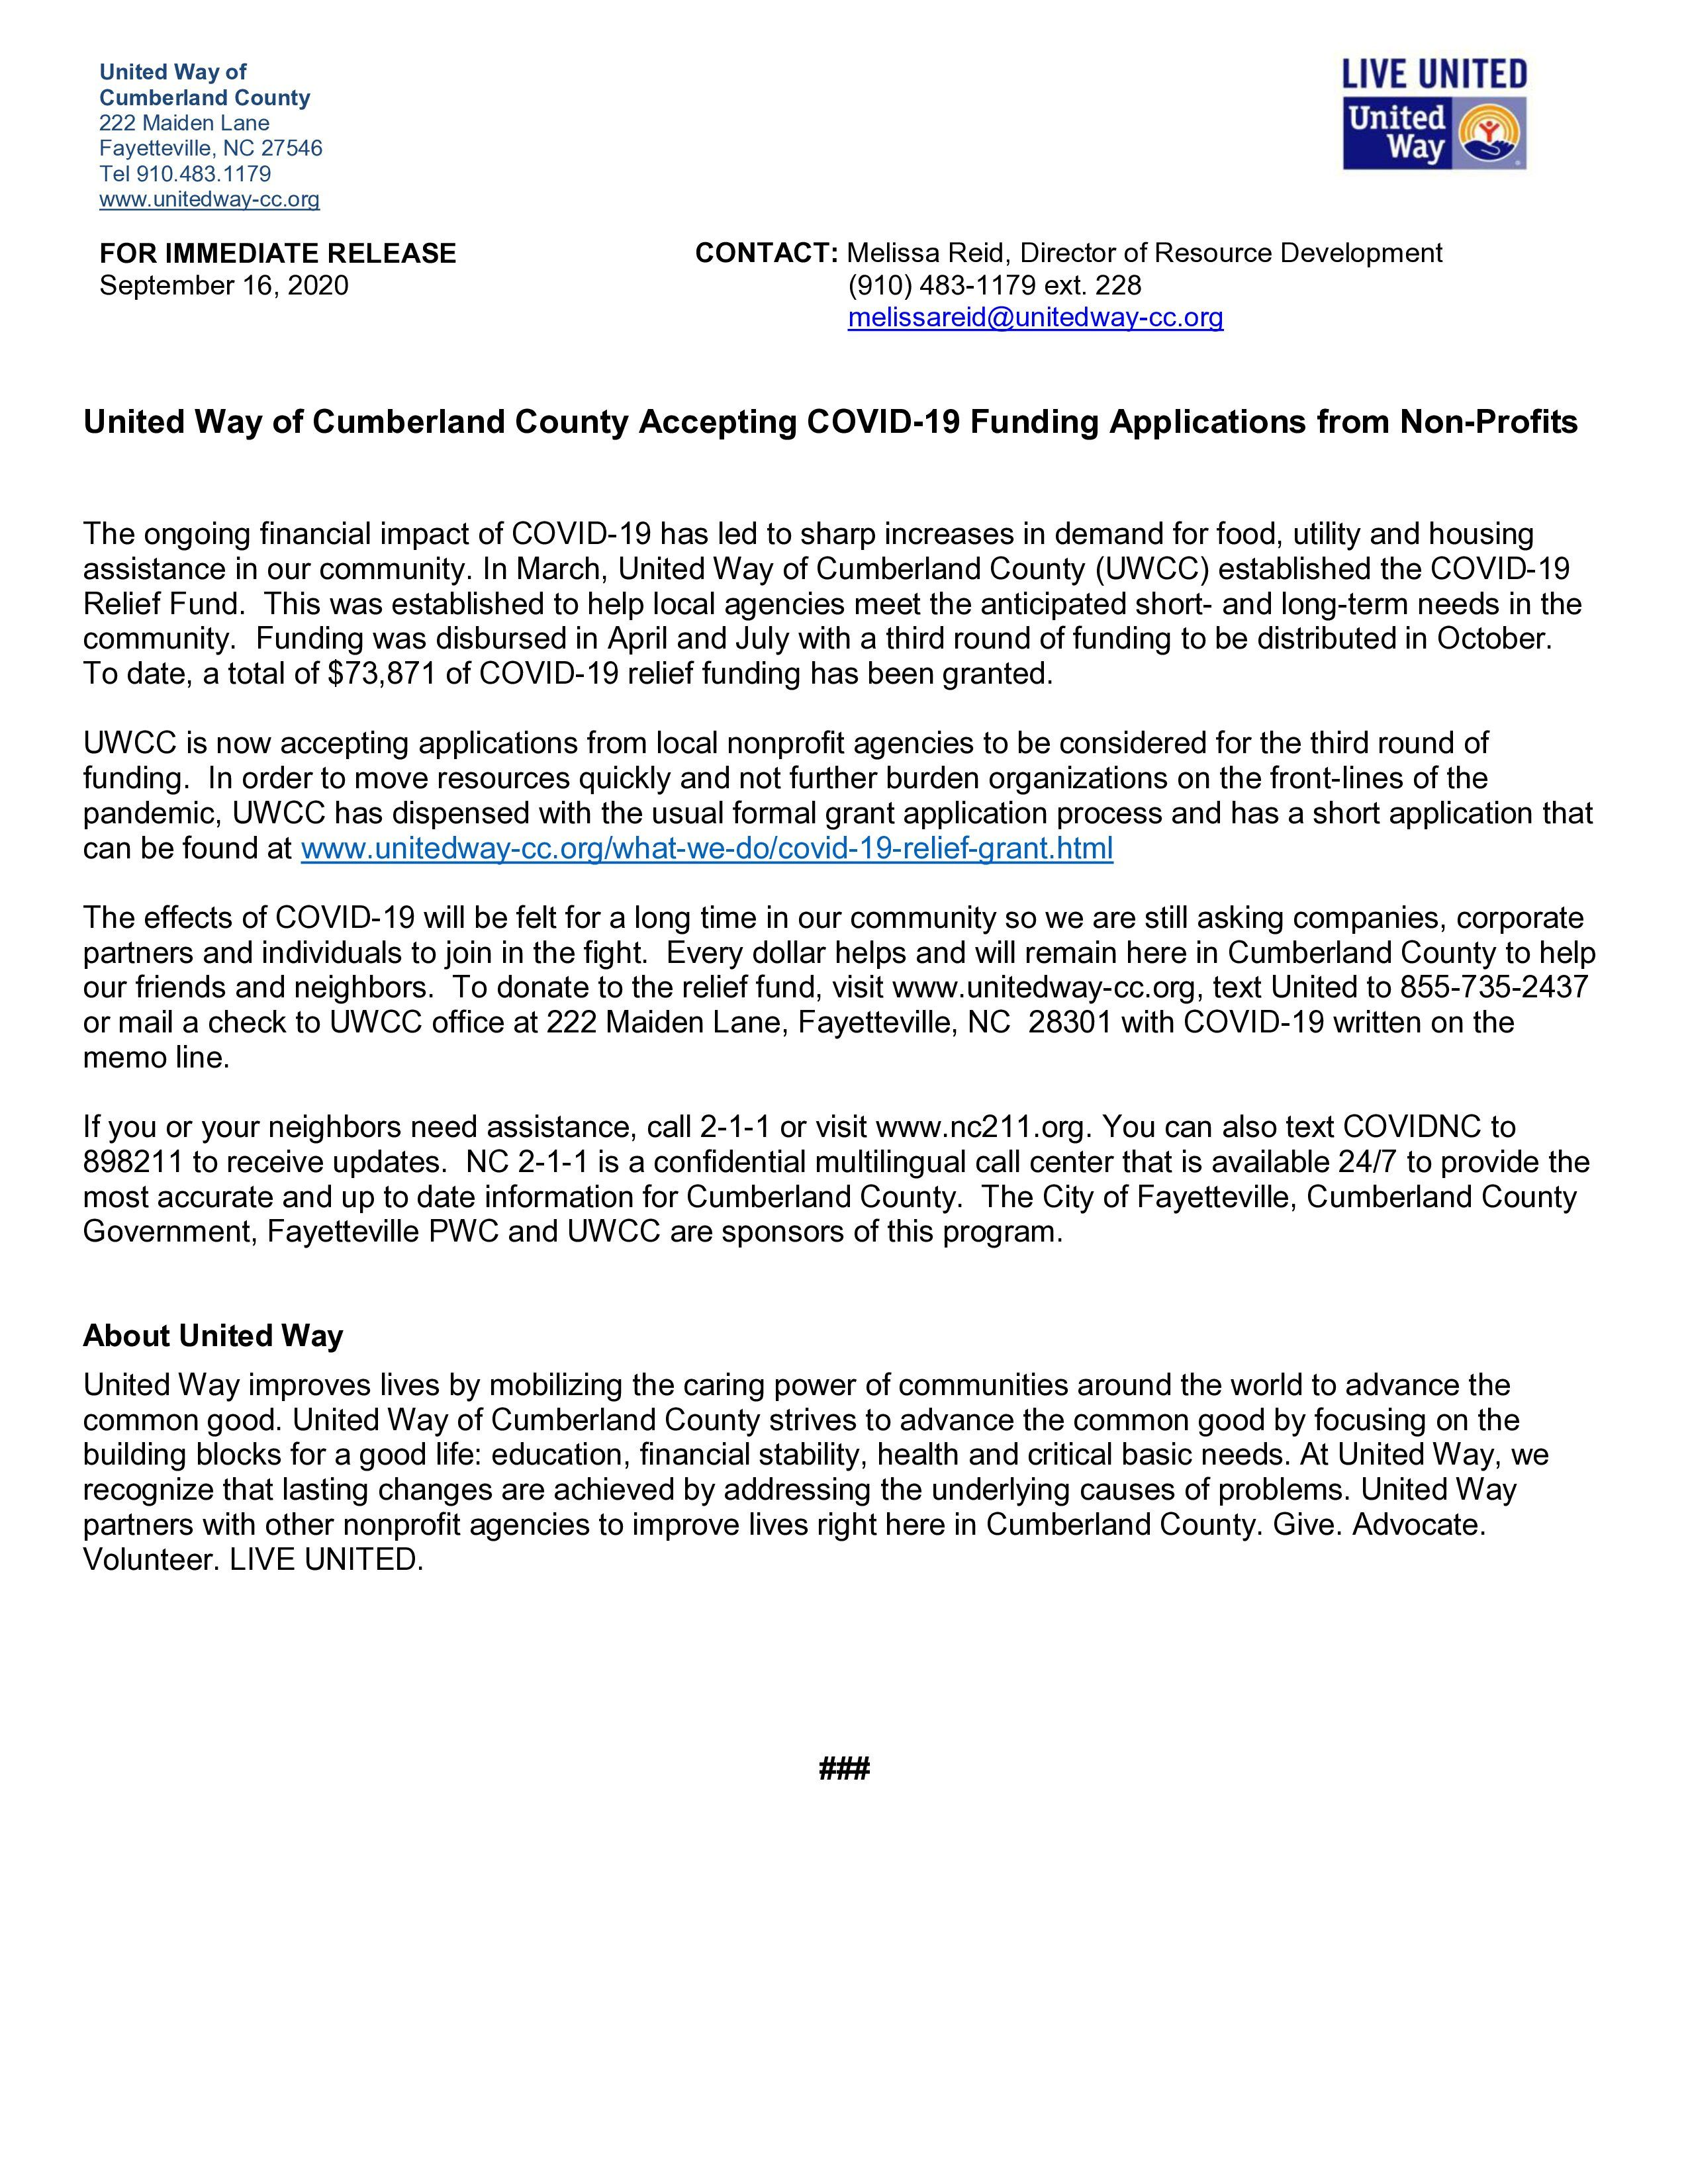 UNITED WAY OF CUMBERLAND COUNTY ACCEPTING COVID-19 FUNDING APPLICATIONS FROM NONPROFITS